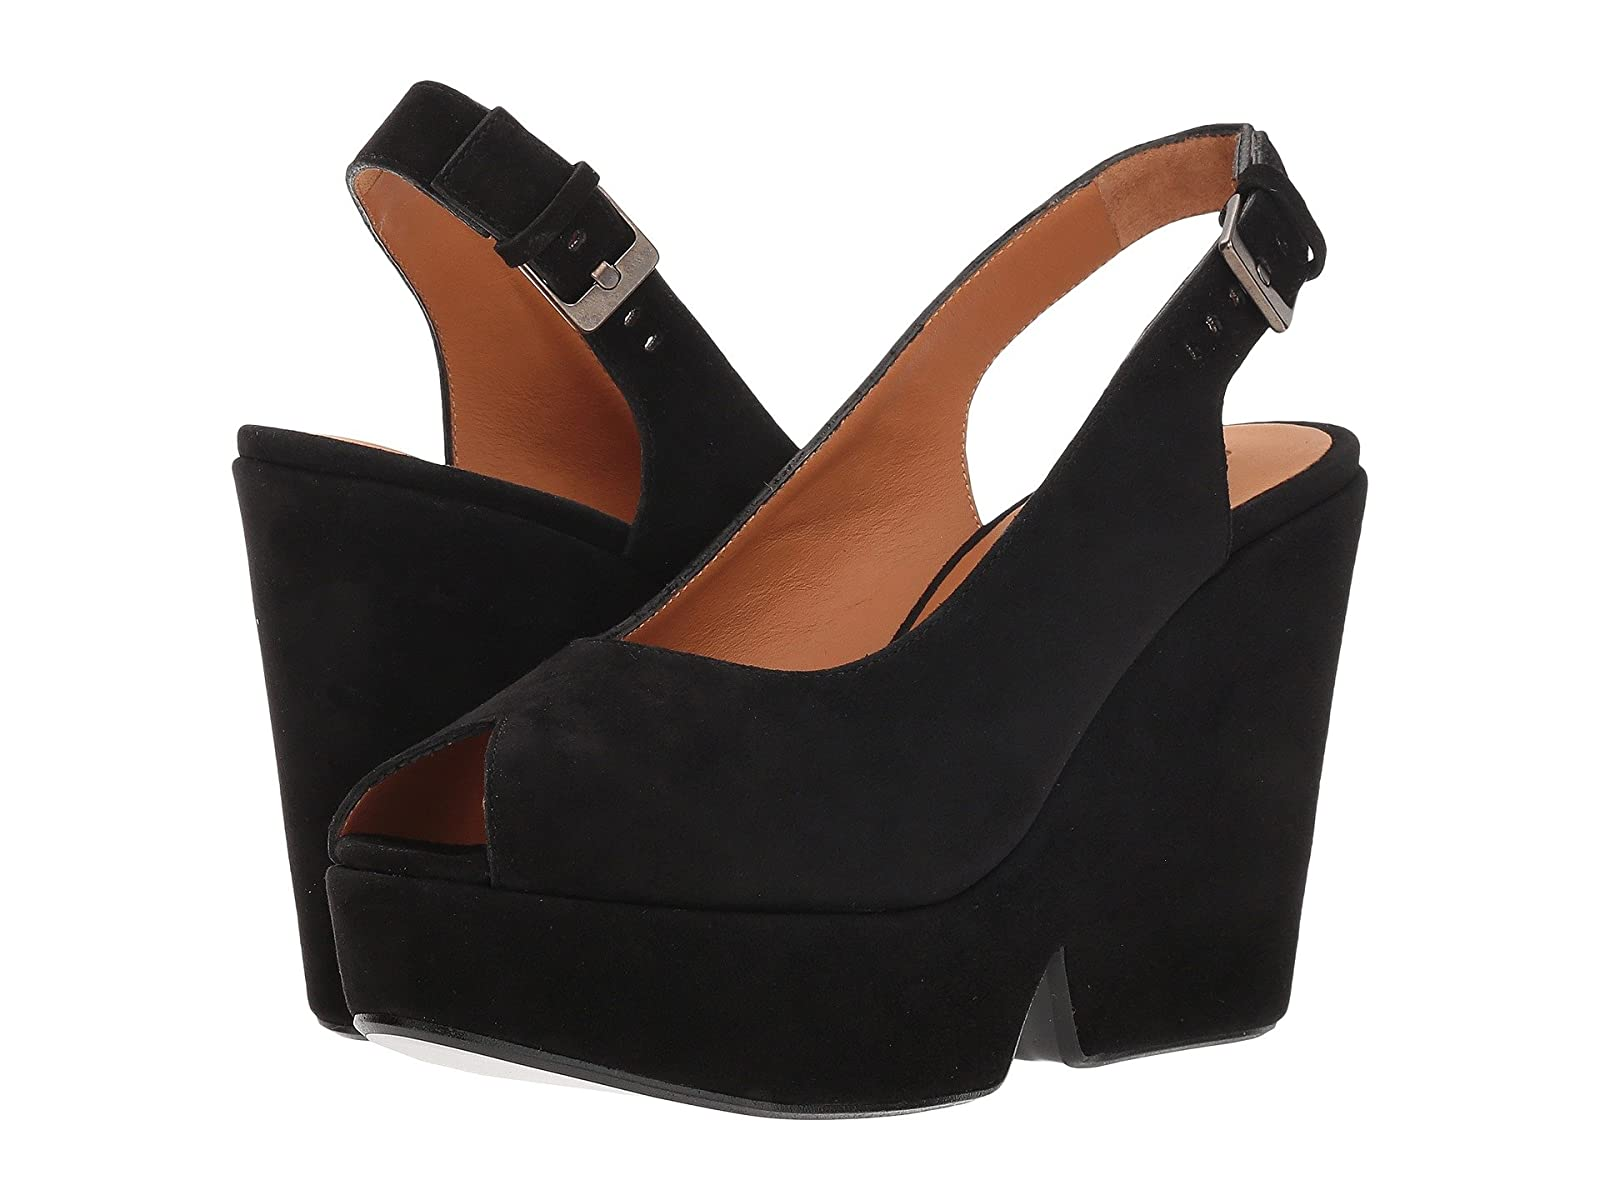 Clergerie DylanAtmospheric grades have affordable shoes